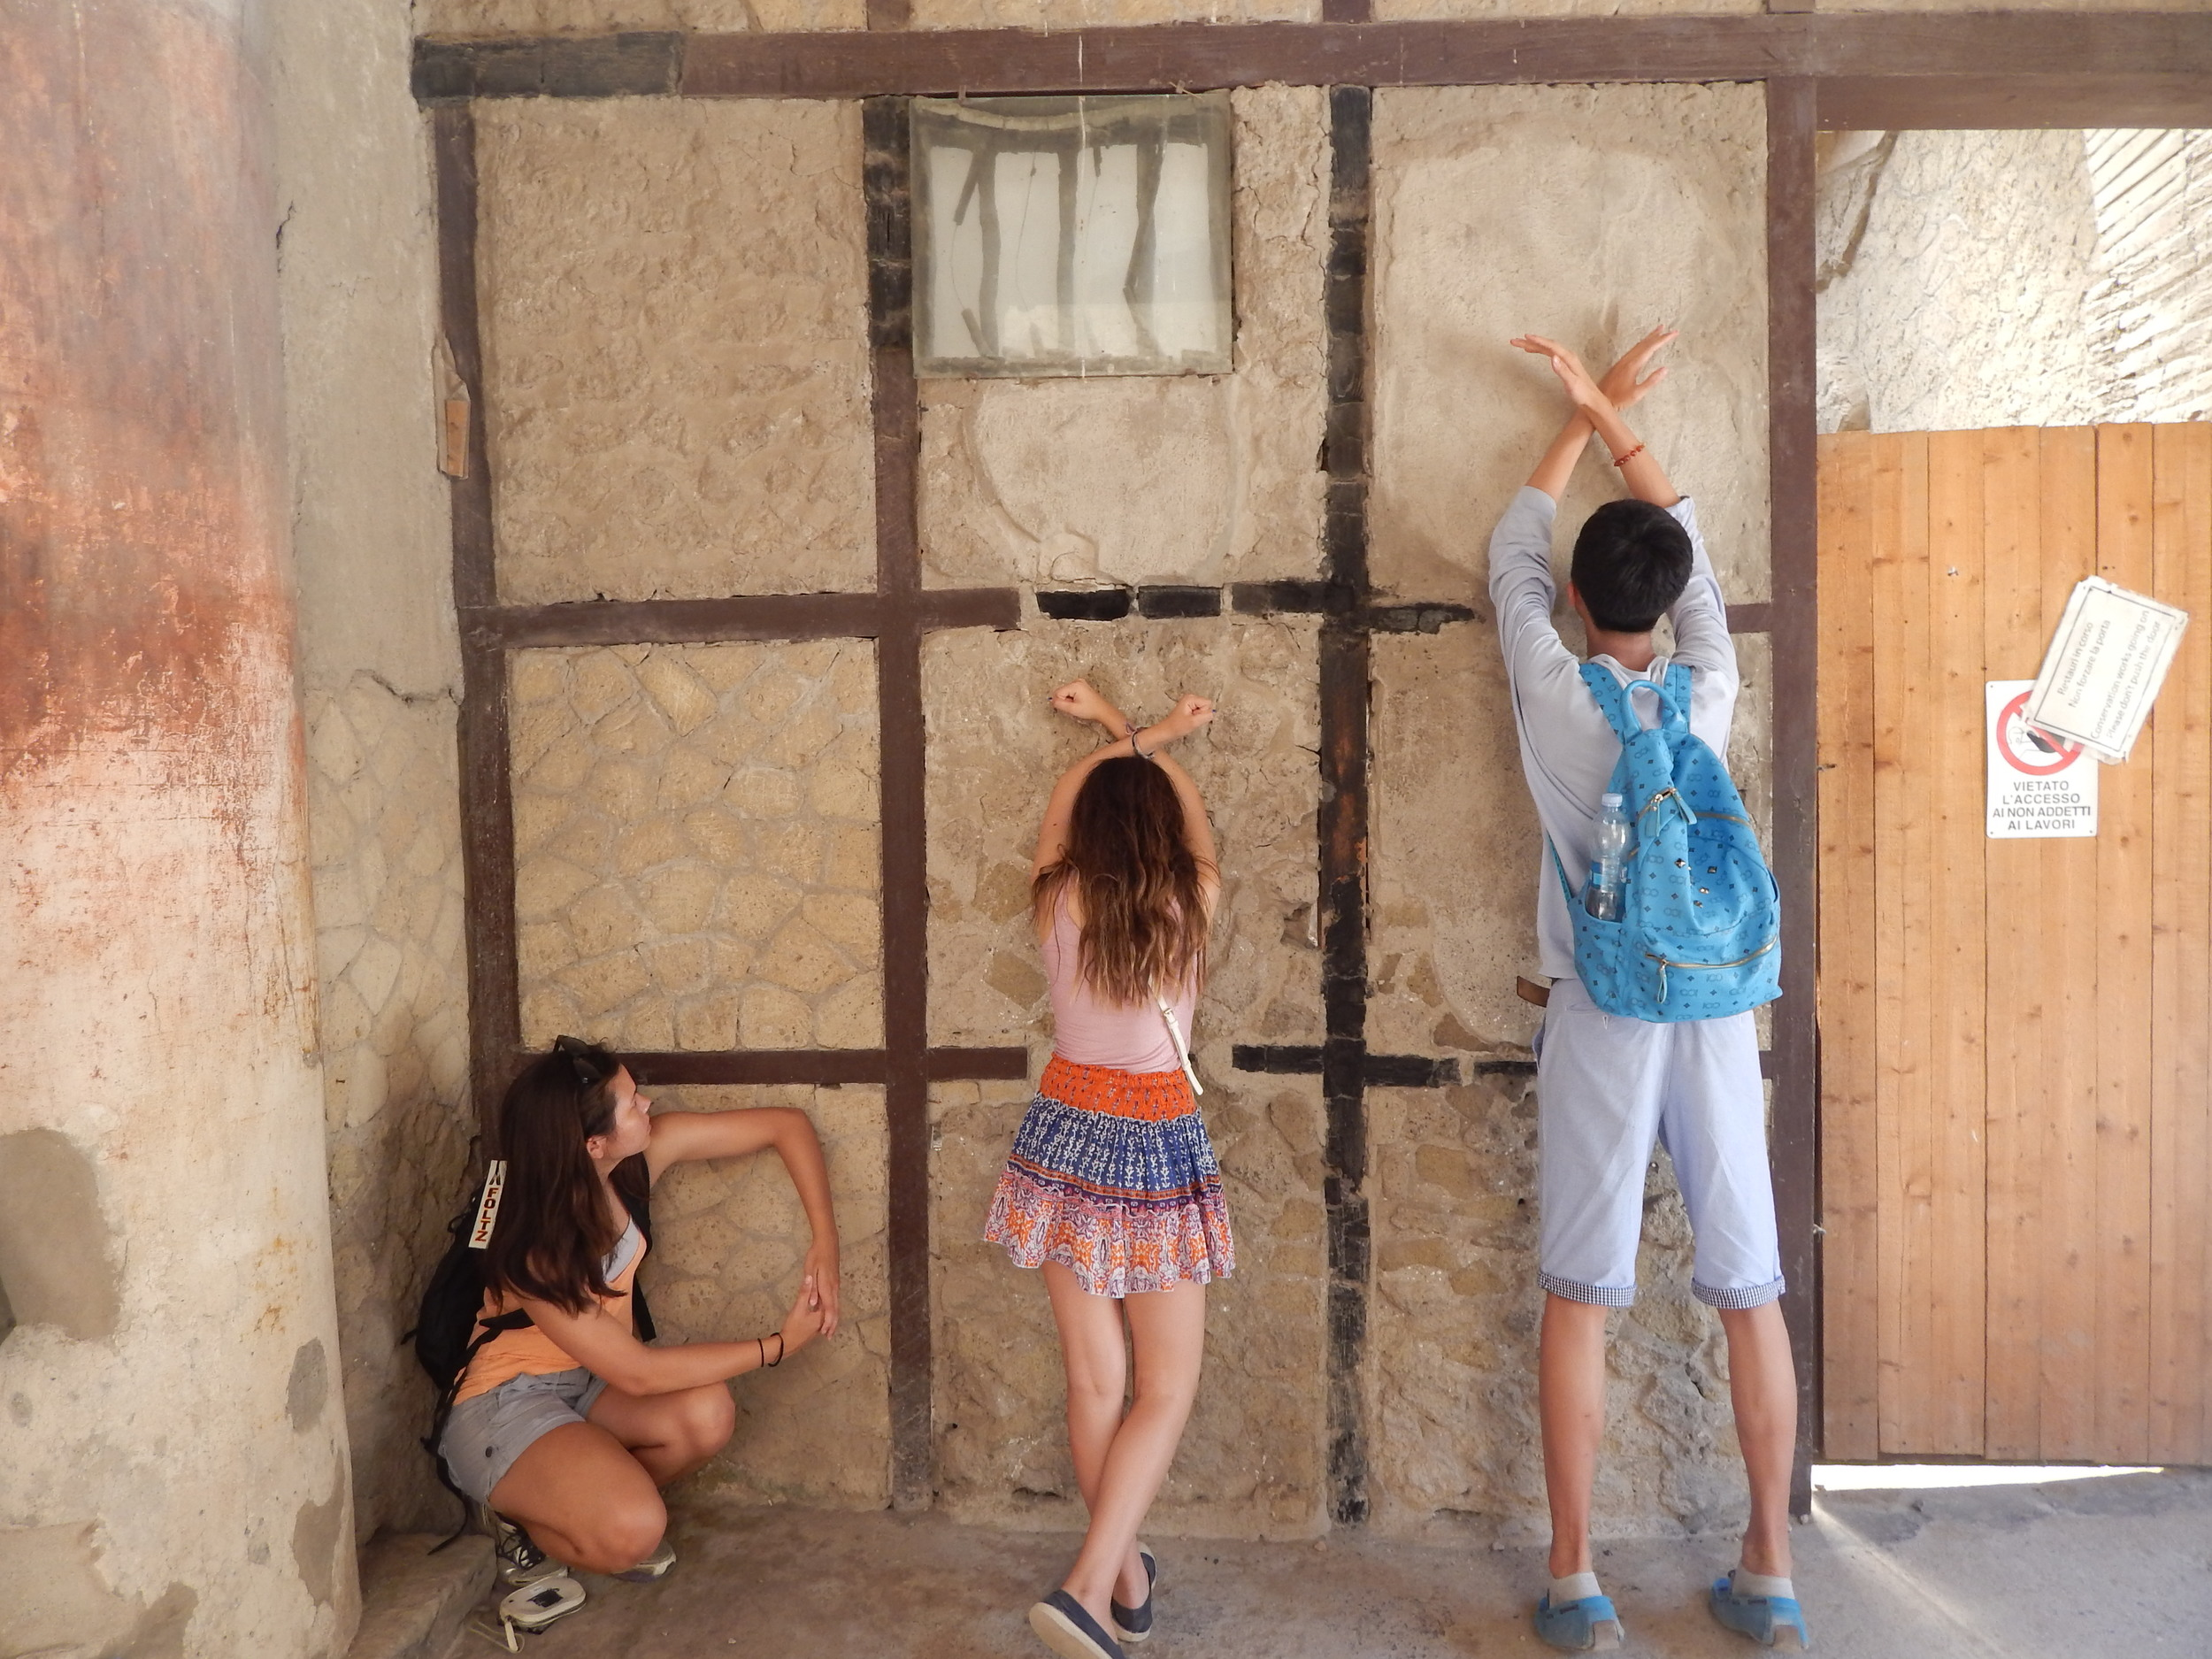 This must be how they played Tic Tac Toe in Herculaneum when the city was flourishing, before the devastation of Vesuvius :).